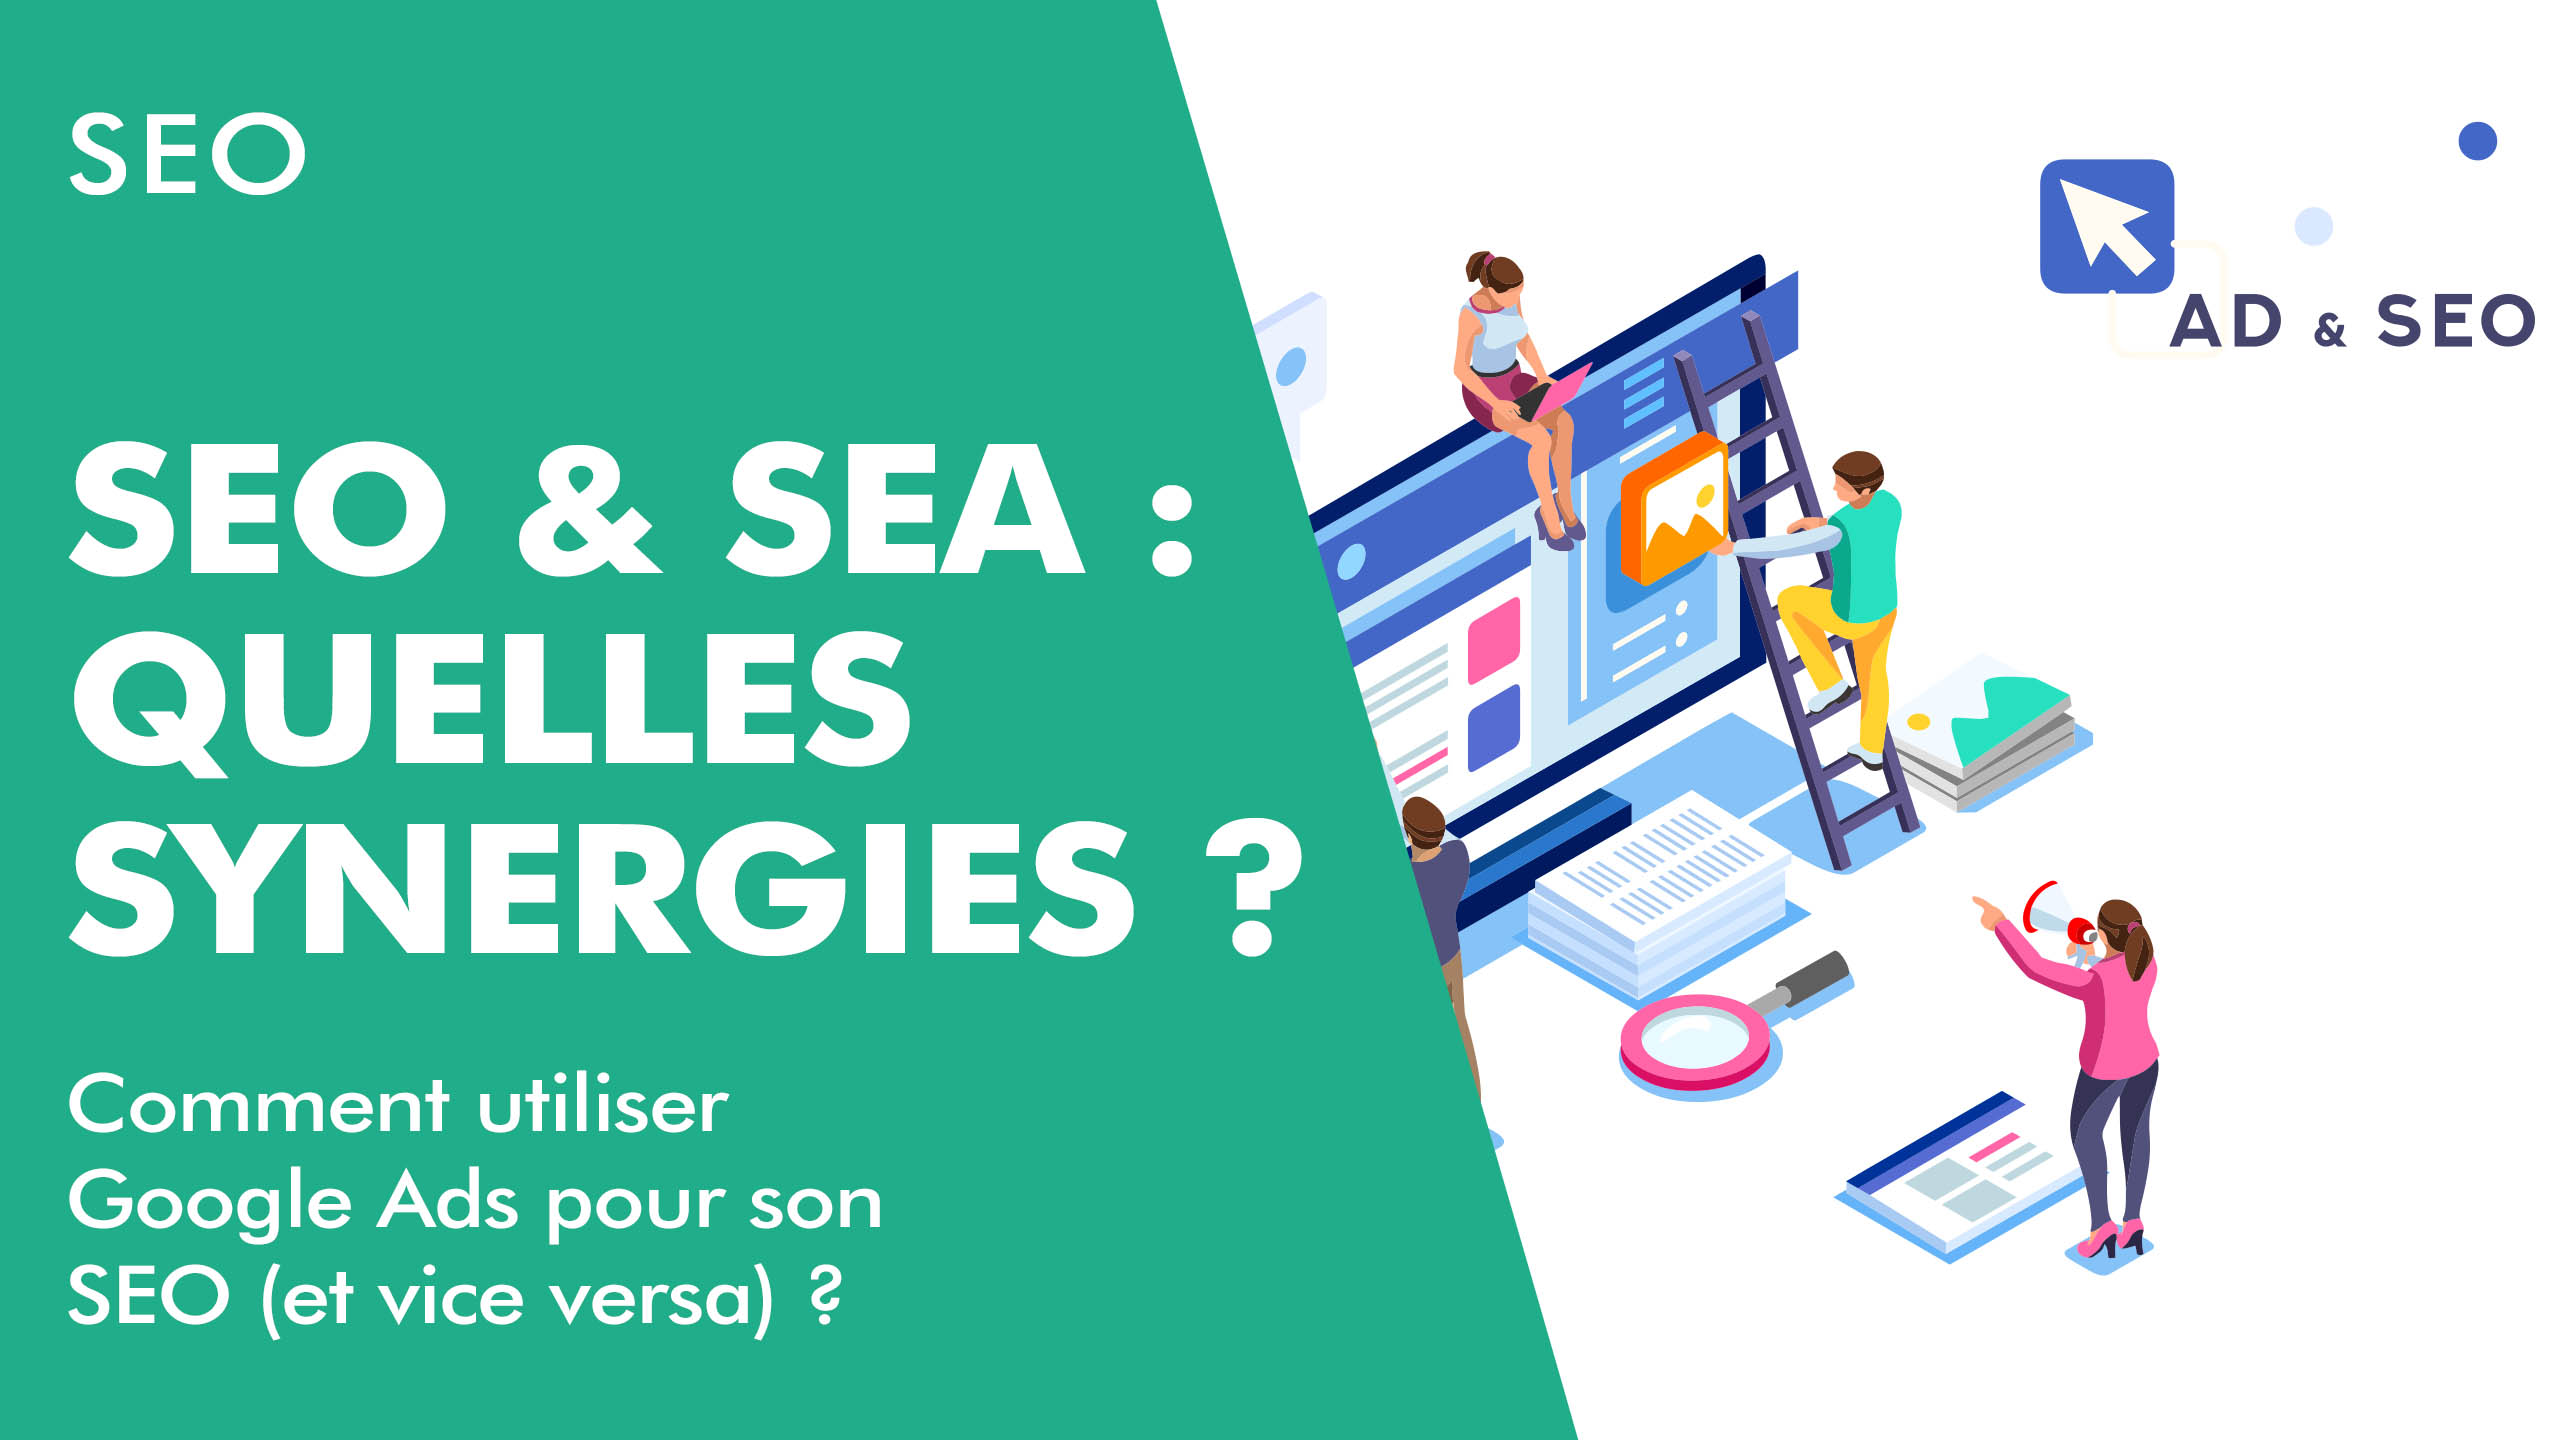 SEO & SEA : quelles synergies ?